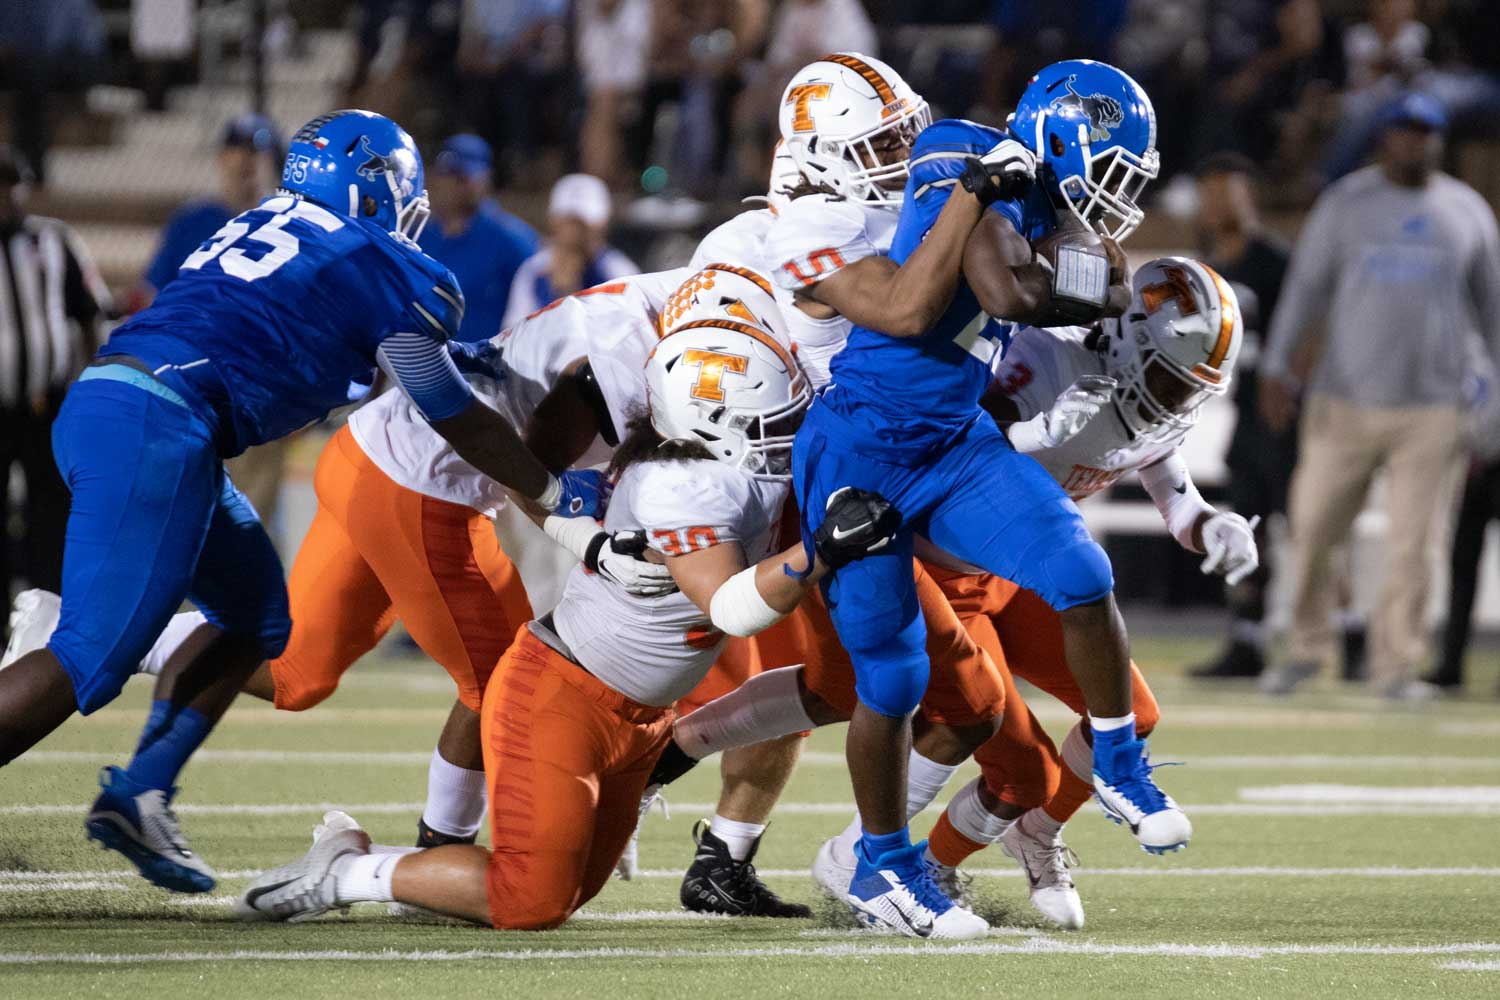 Texas High's defenders Devaughante Jack (30) and Clayton Smith (10) attempt to bring down the running back from John Tyler September 27, 2019. The Tigers lost their district opener 16-0.